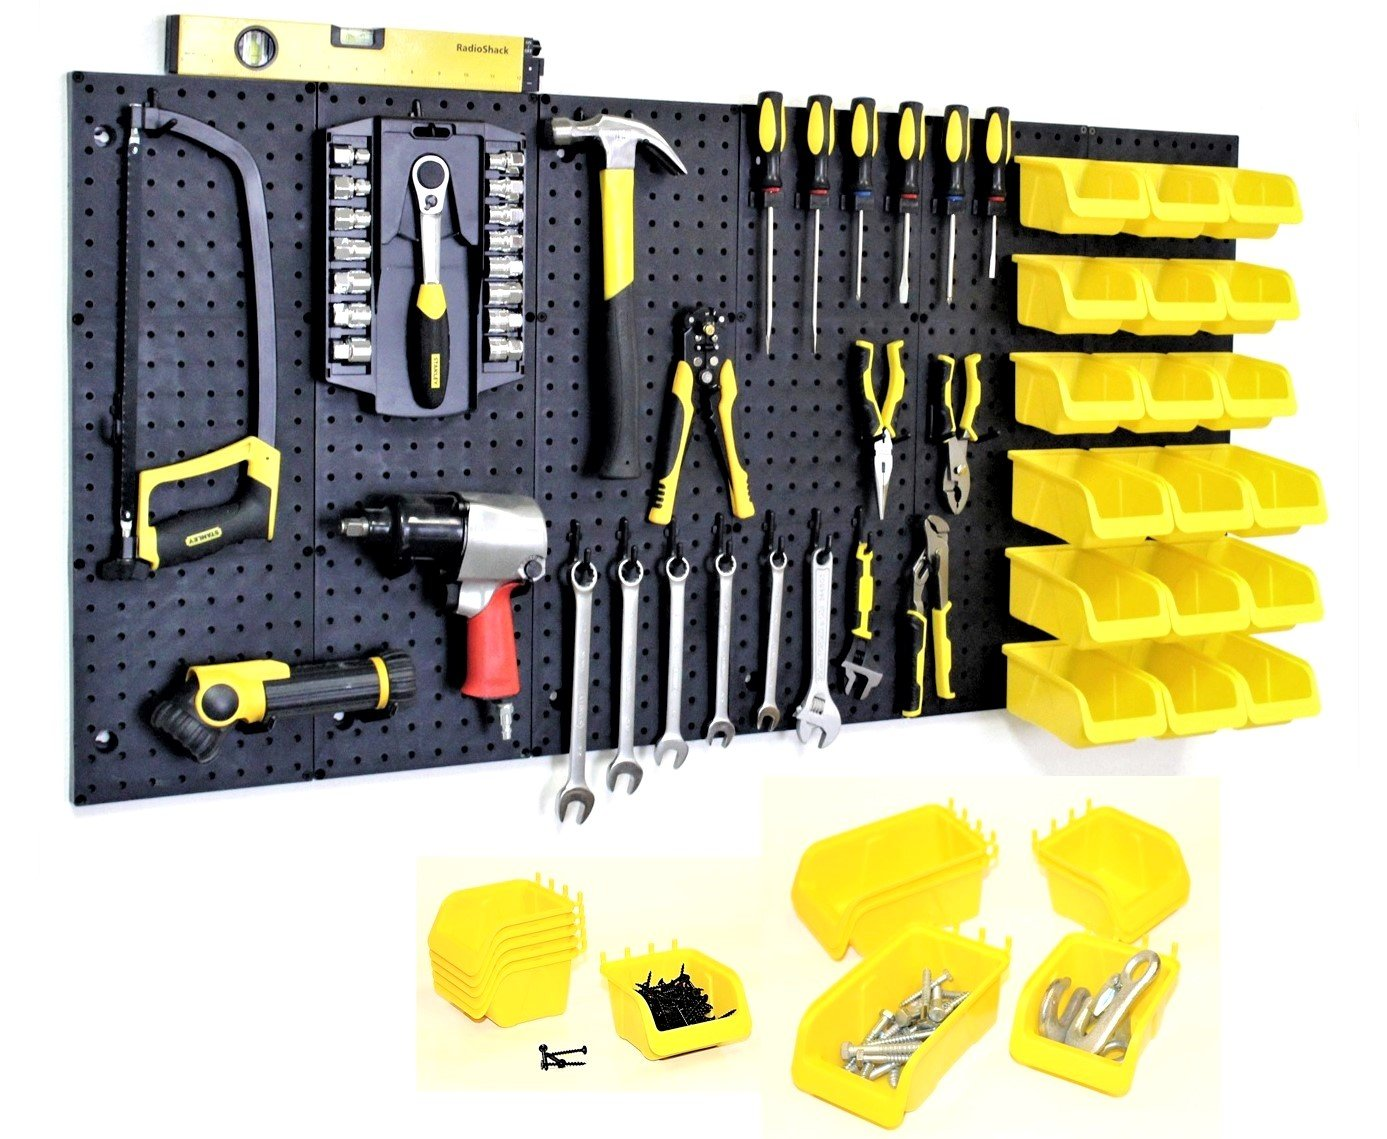 WallPeg Garage Storage System with Panels, Bins, Peg Board Hooks and Panel Set - Tool Parts and Craft Organizer (Kit with 18 Bins) by WallPeg